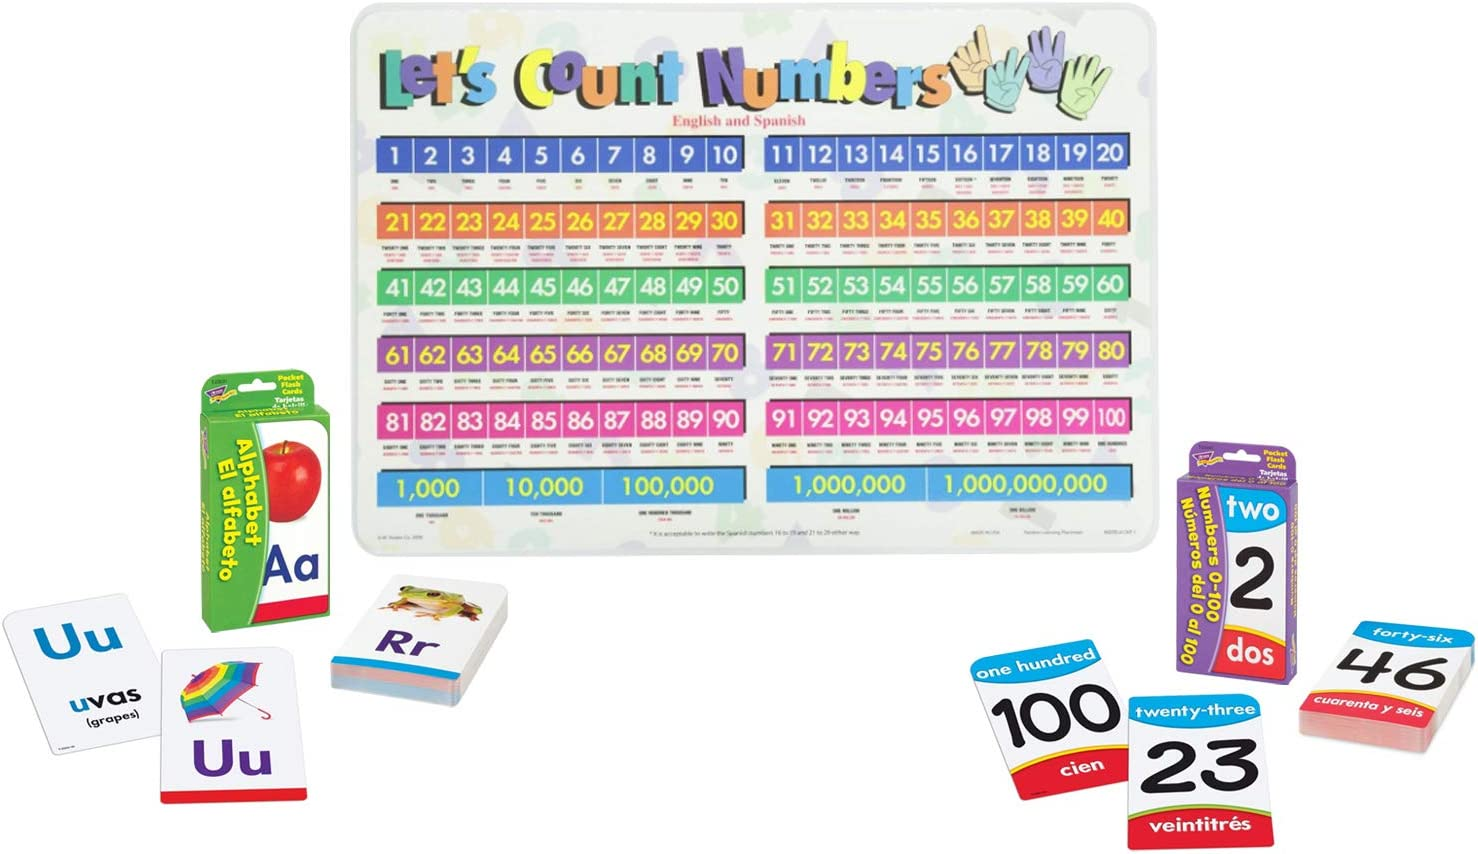 Pocket Flash Cards English//Spanish Laminated Educational Placemat for Kids: Lets Count Numbers Table Mat with Bilingual Flashcards: Alphabet and Numbers 0-100 Set of 3 Items